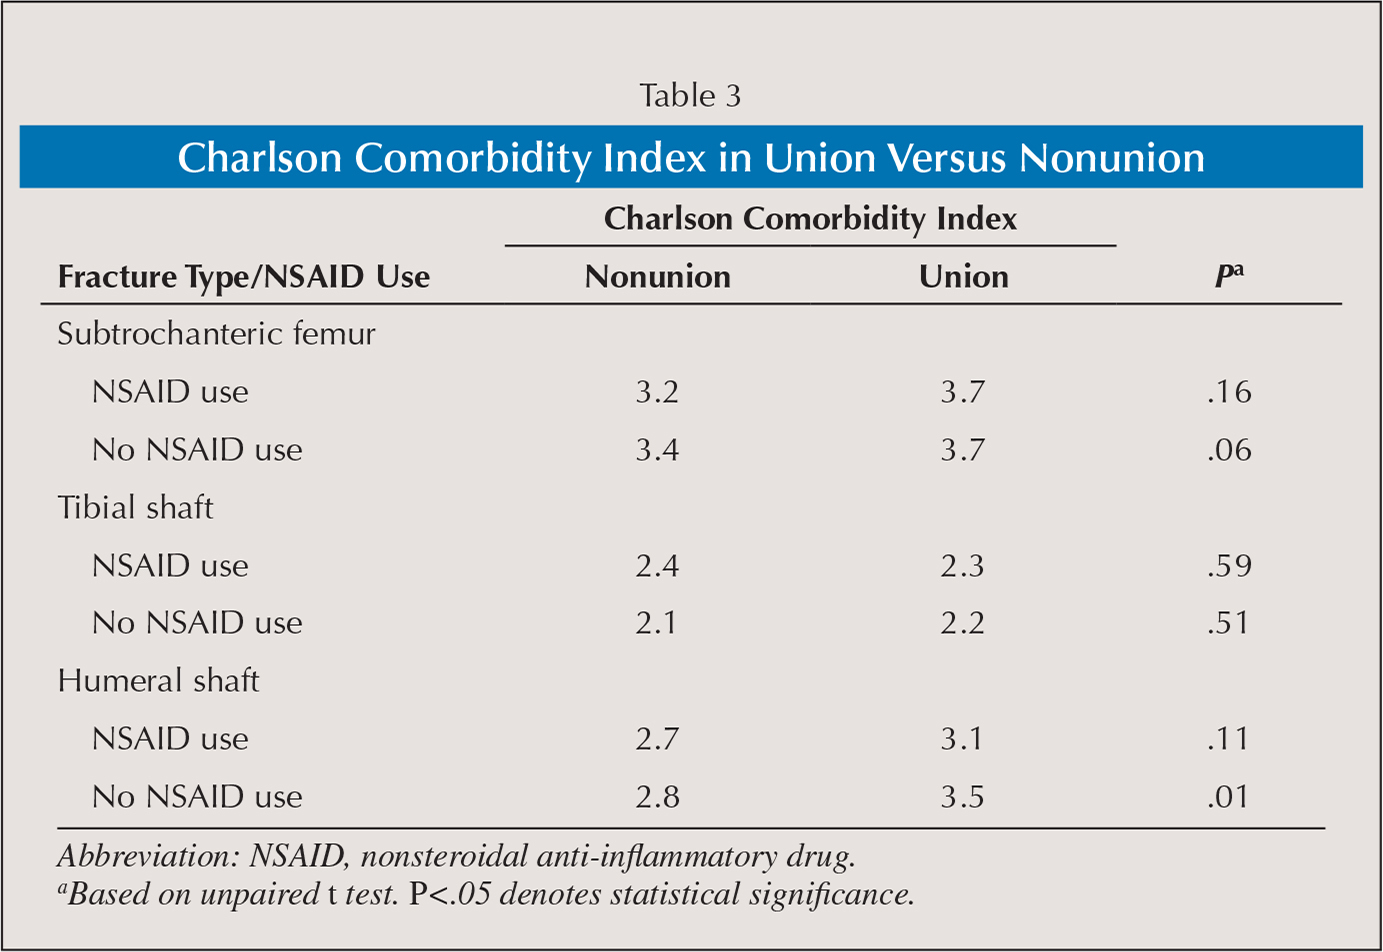 Charlson Comorbidity Index in Union Versus Nonunion